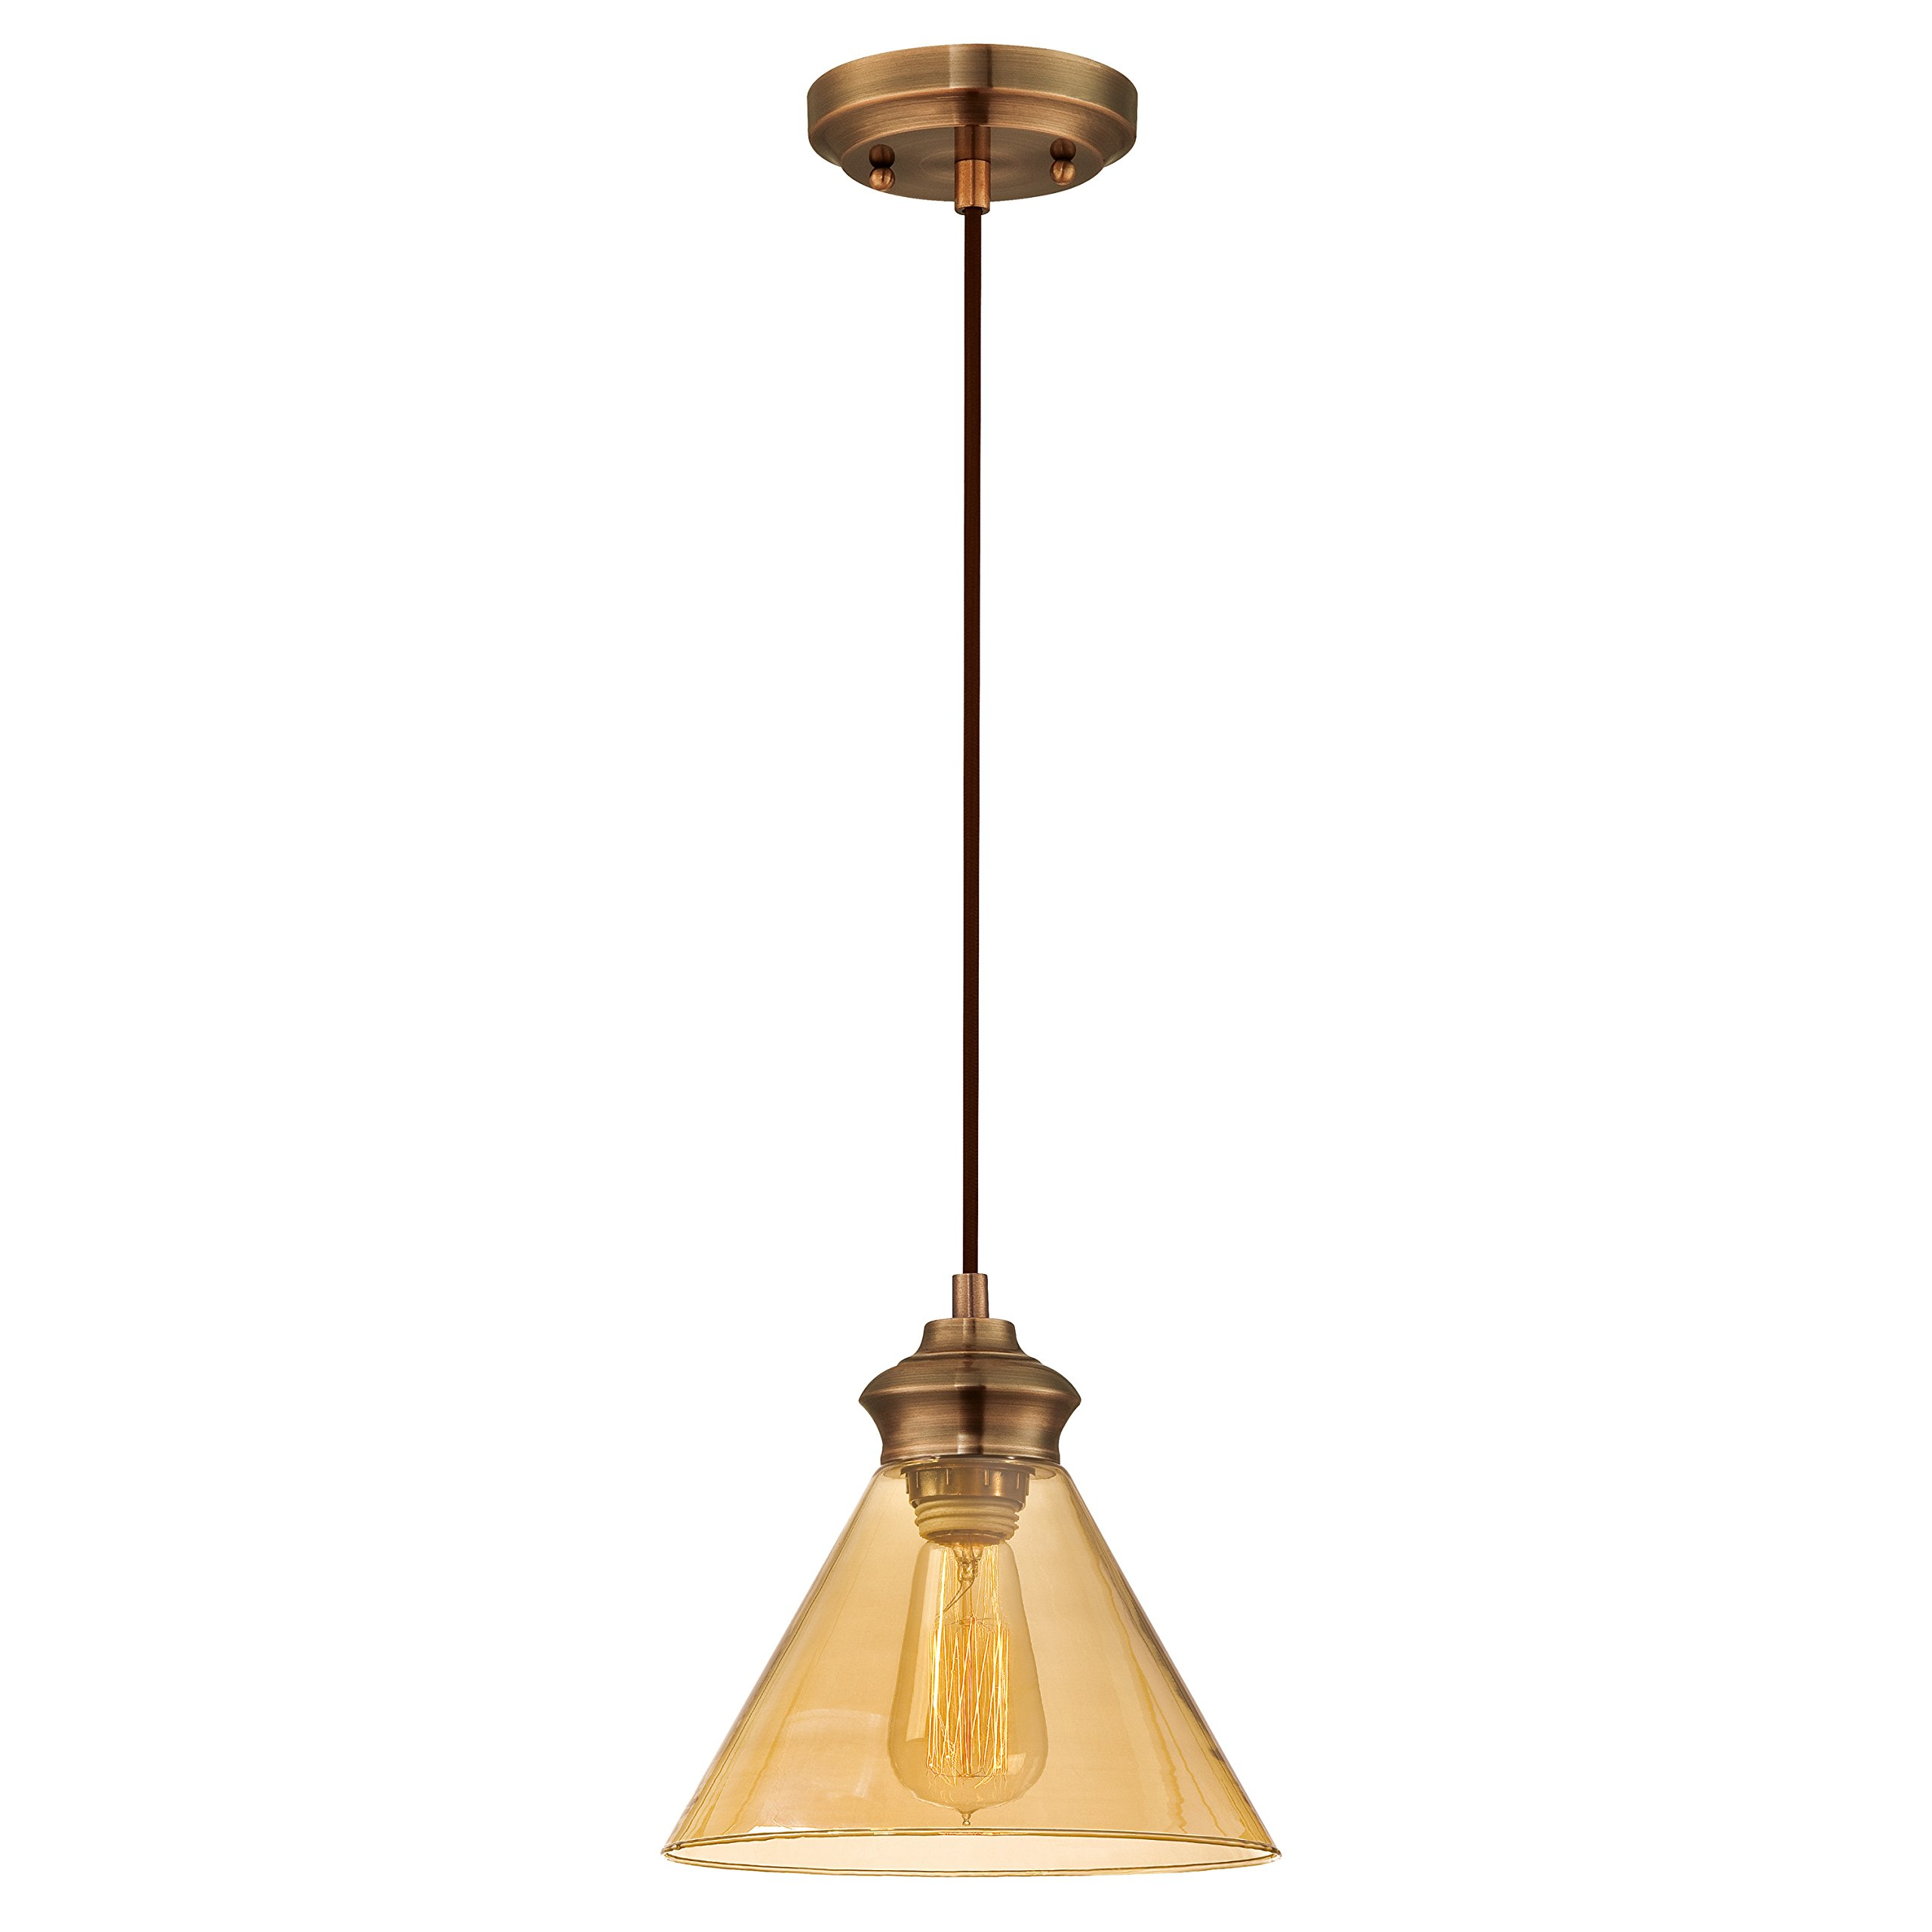 Westinghouse 6205400 One-Light Adjustable Vintage Mini Pendant with Amber Glass, Copper